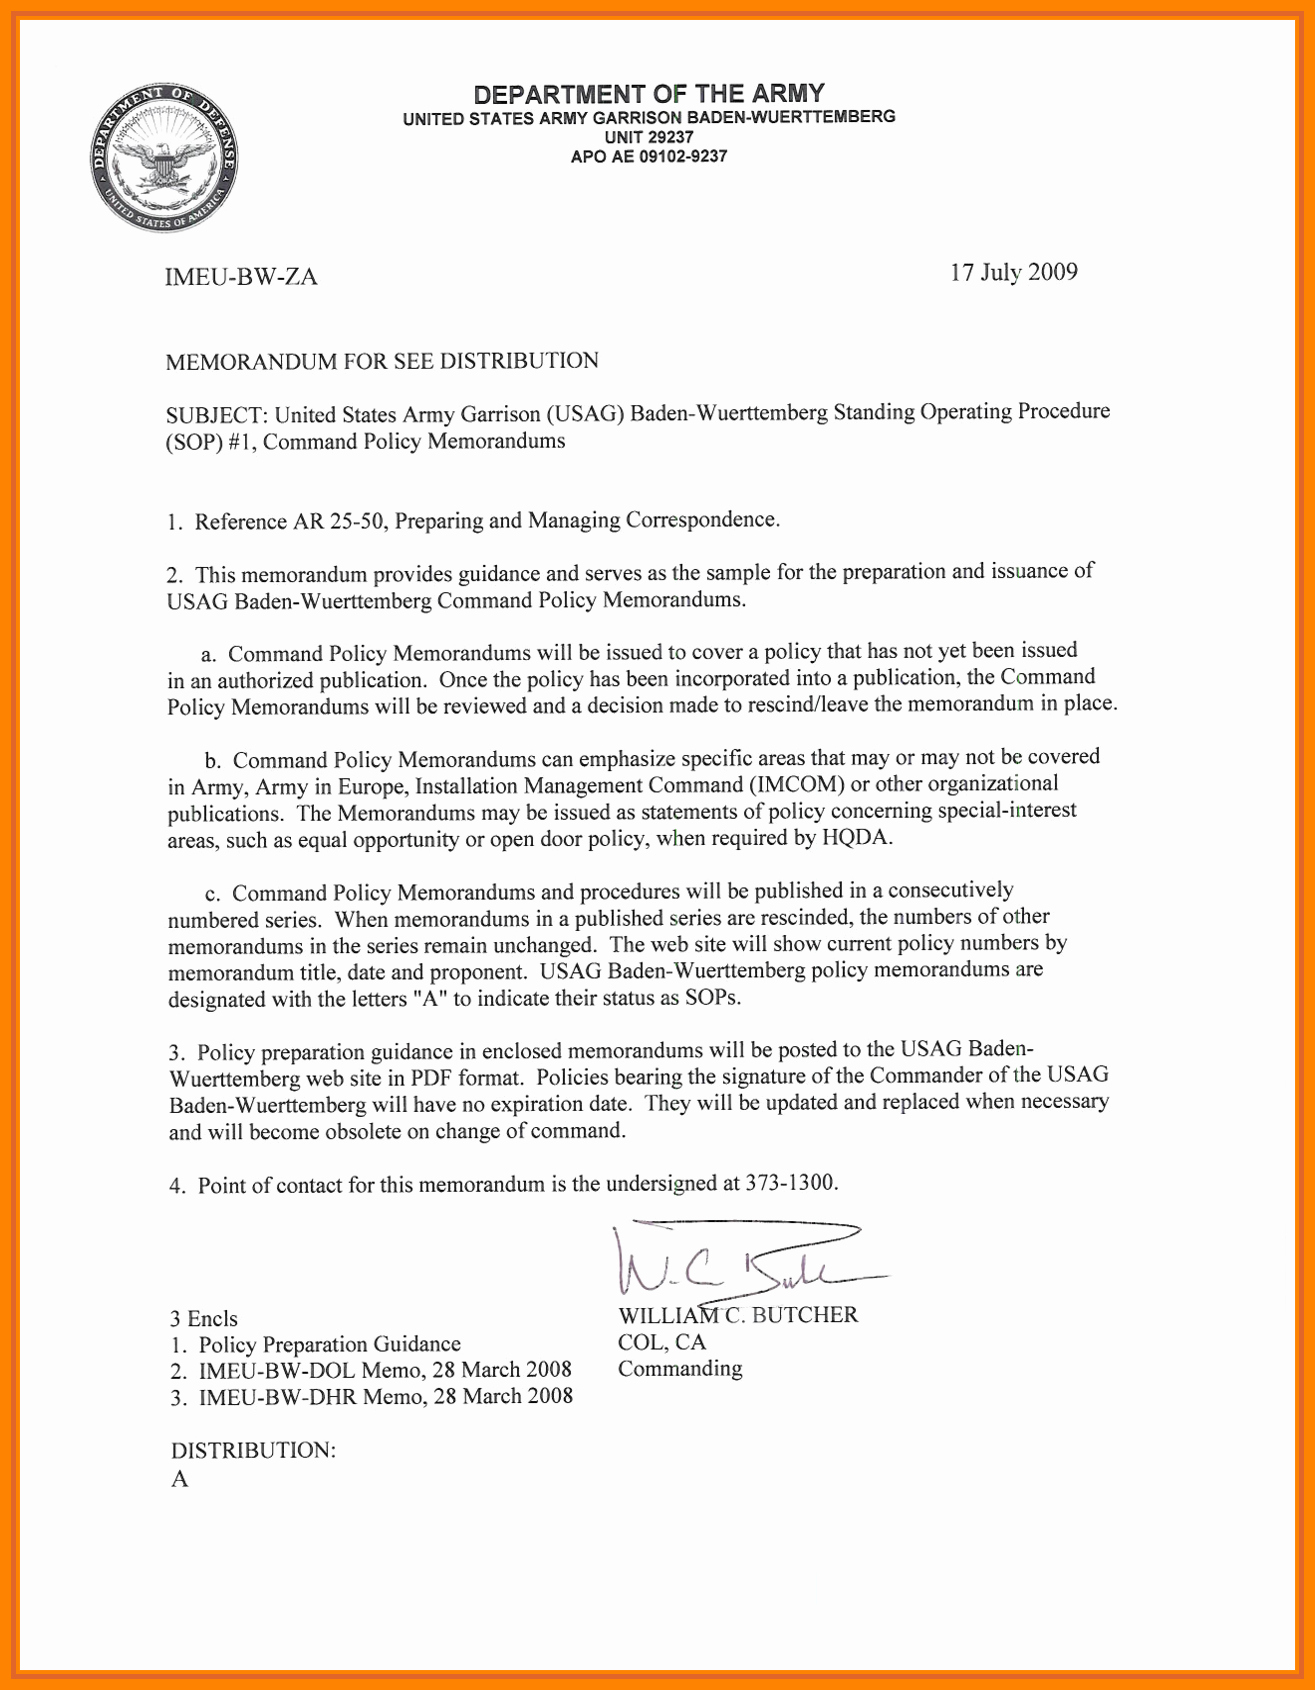 Memorandum for Record Template Awesome 15 Memorandum Of Record Army